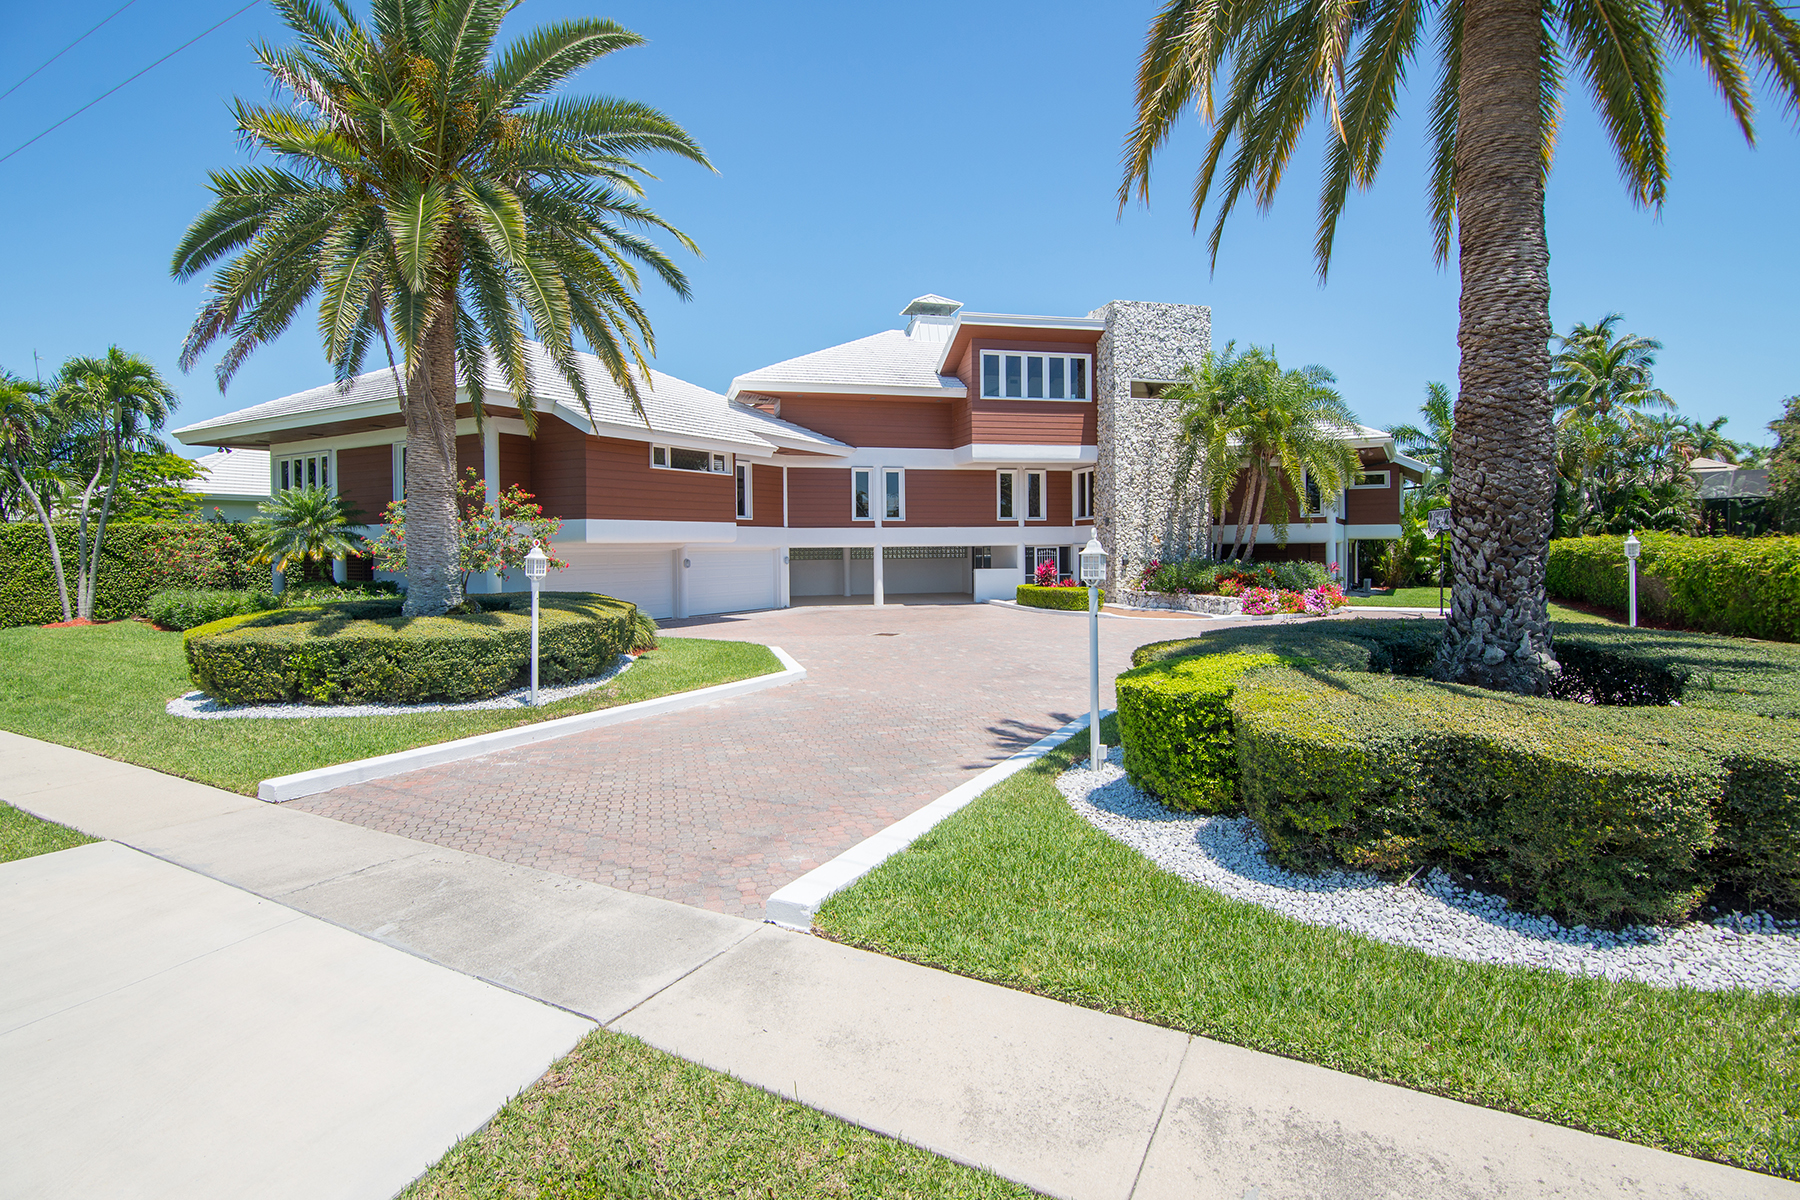 Single Family Home for Sale at MARCO ISLAND - S BARFIELD DRIVE 919 S Barfield Dr Marco Island, Florida 34145 United States